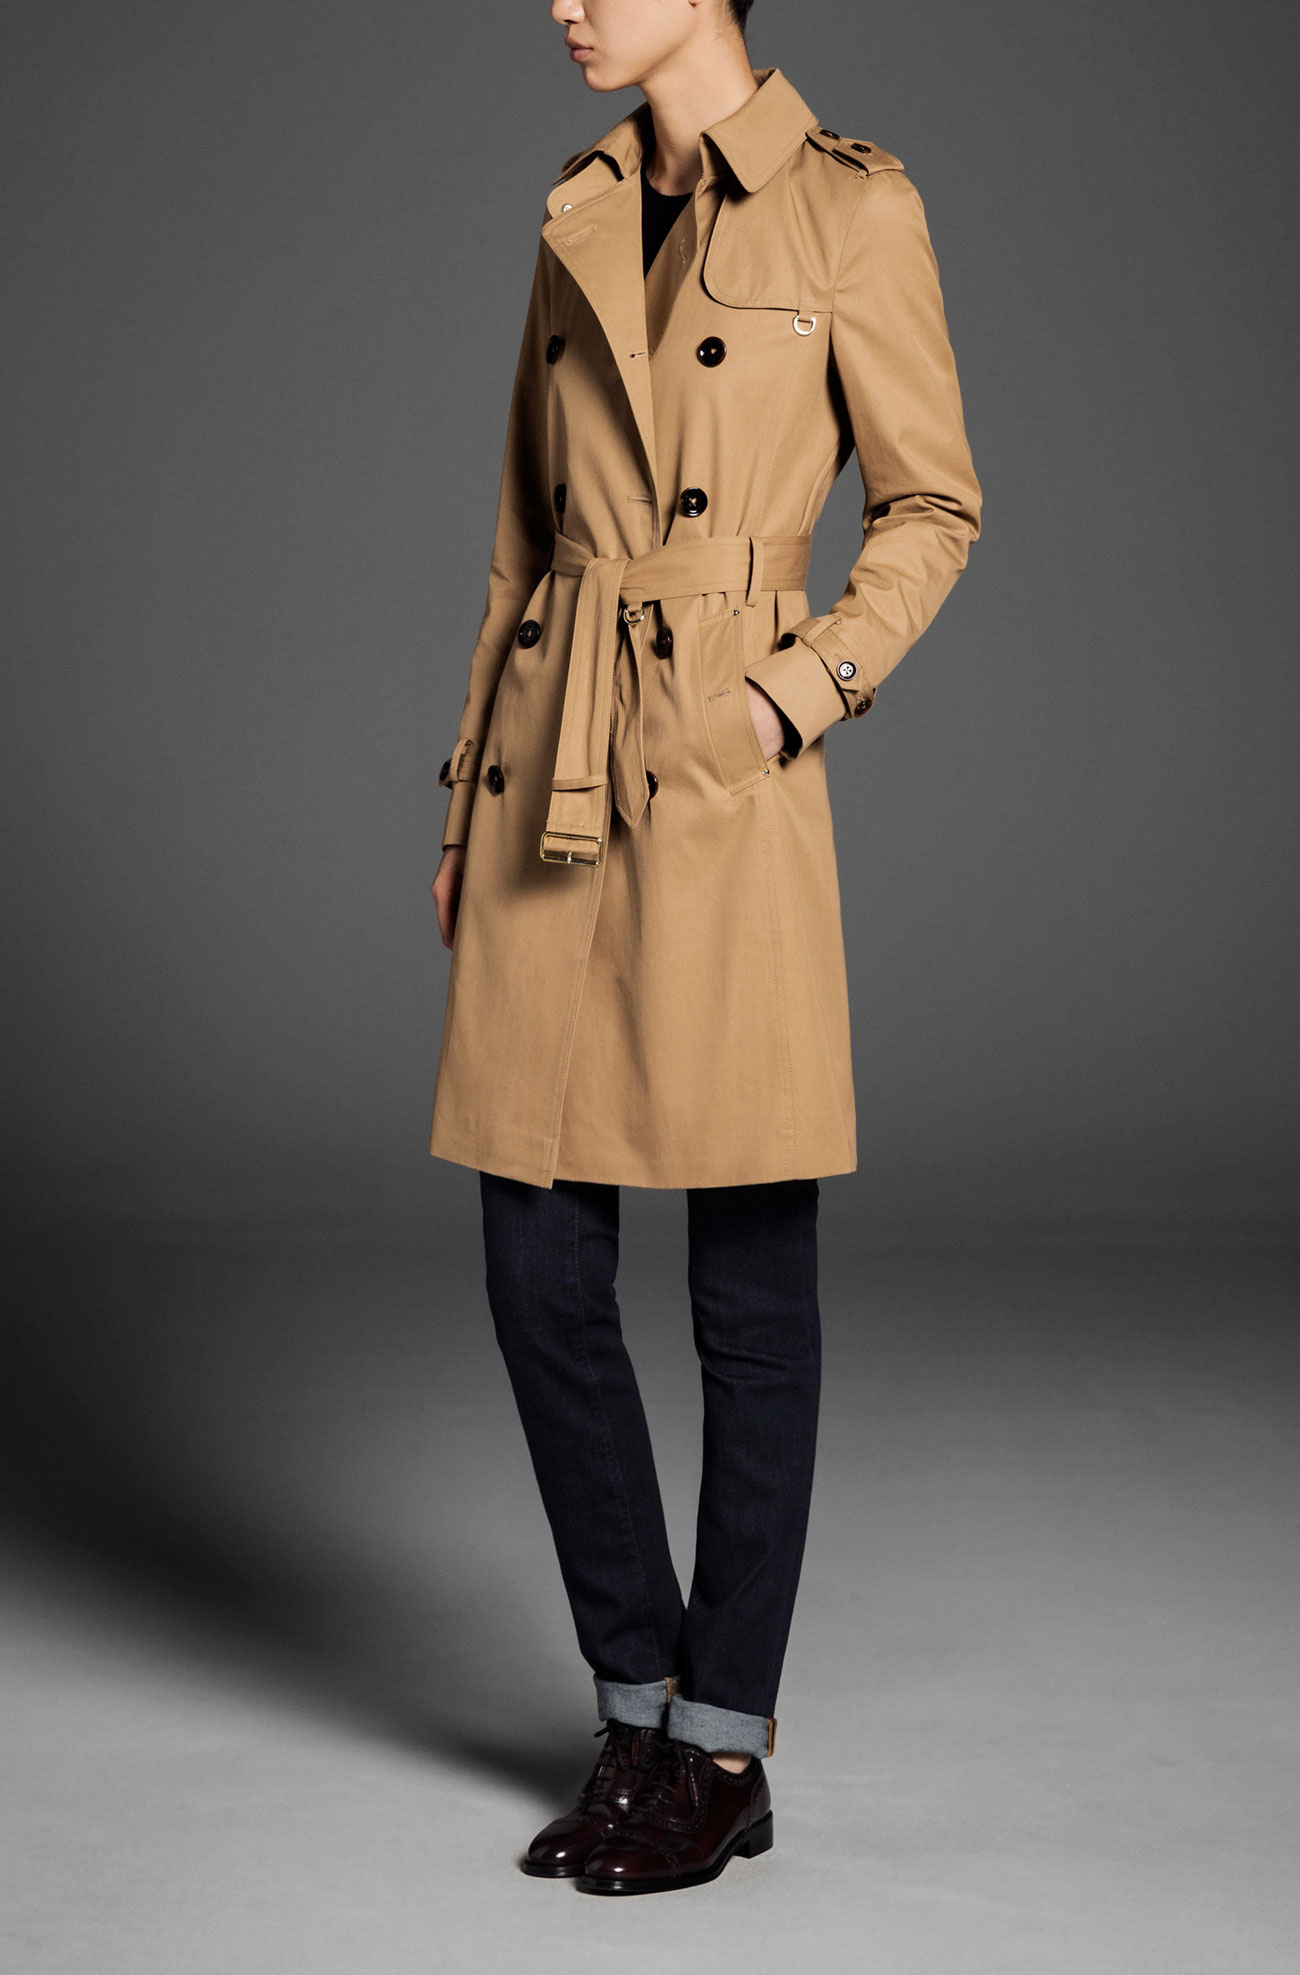 1000 images about my coats on pinterest adolfo for Adolfo dominguez womens coats